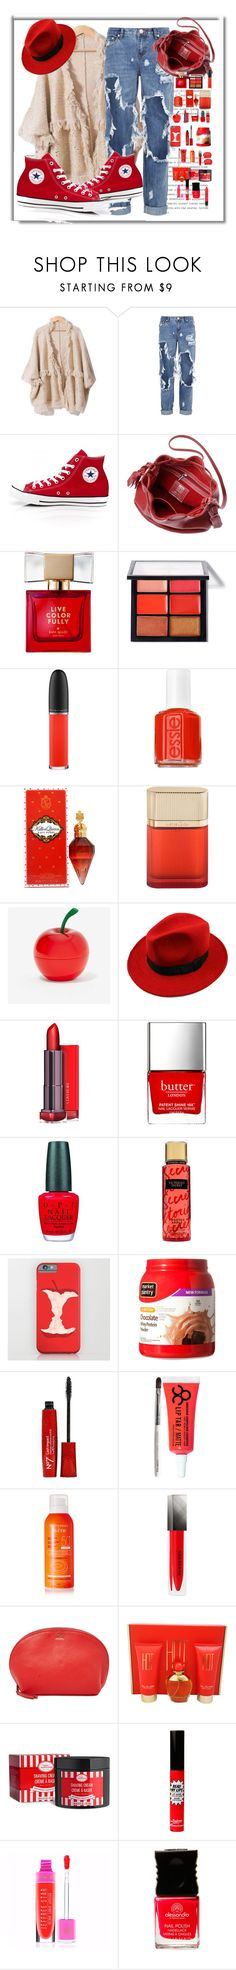 """""""Untitled #54"""" by macyofficial ❤ liked on Polyvore featuring One Teaspoon, Converse, Kate Spade, MAC Cosmetics, Essie, Cartier, Tony Moly, WithChic, Butter London and OPI"""